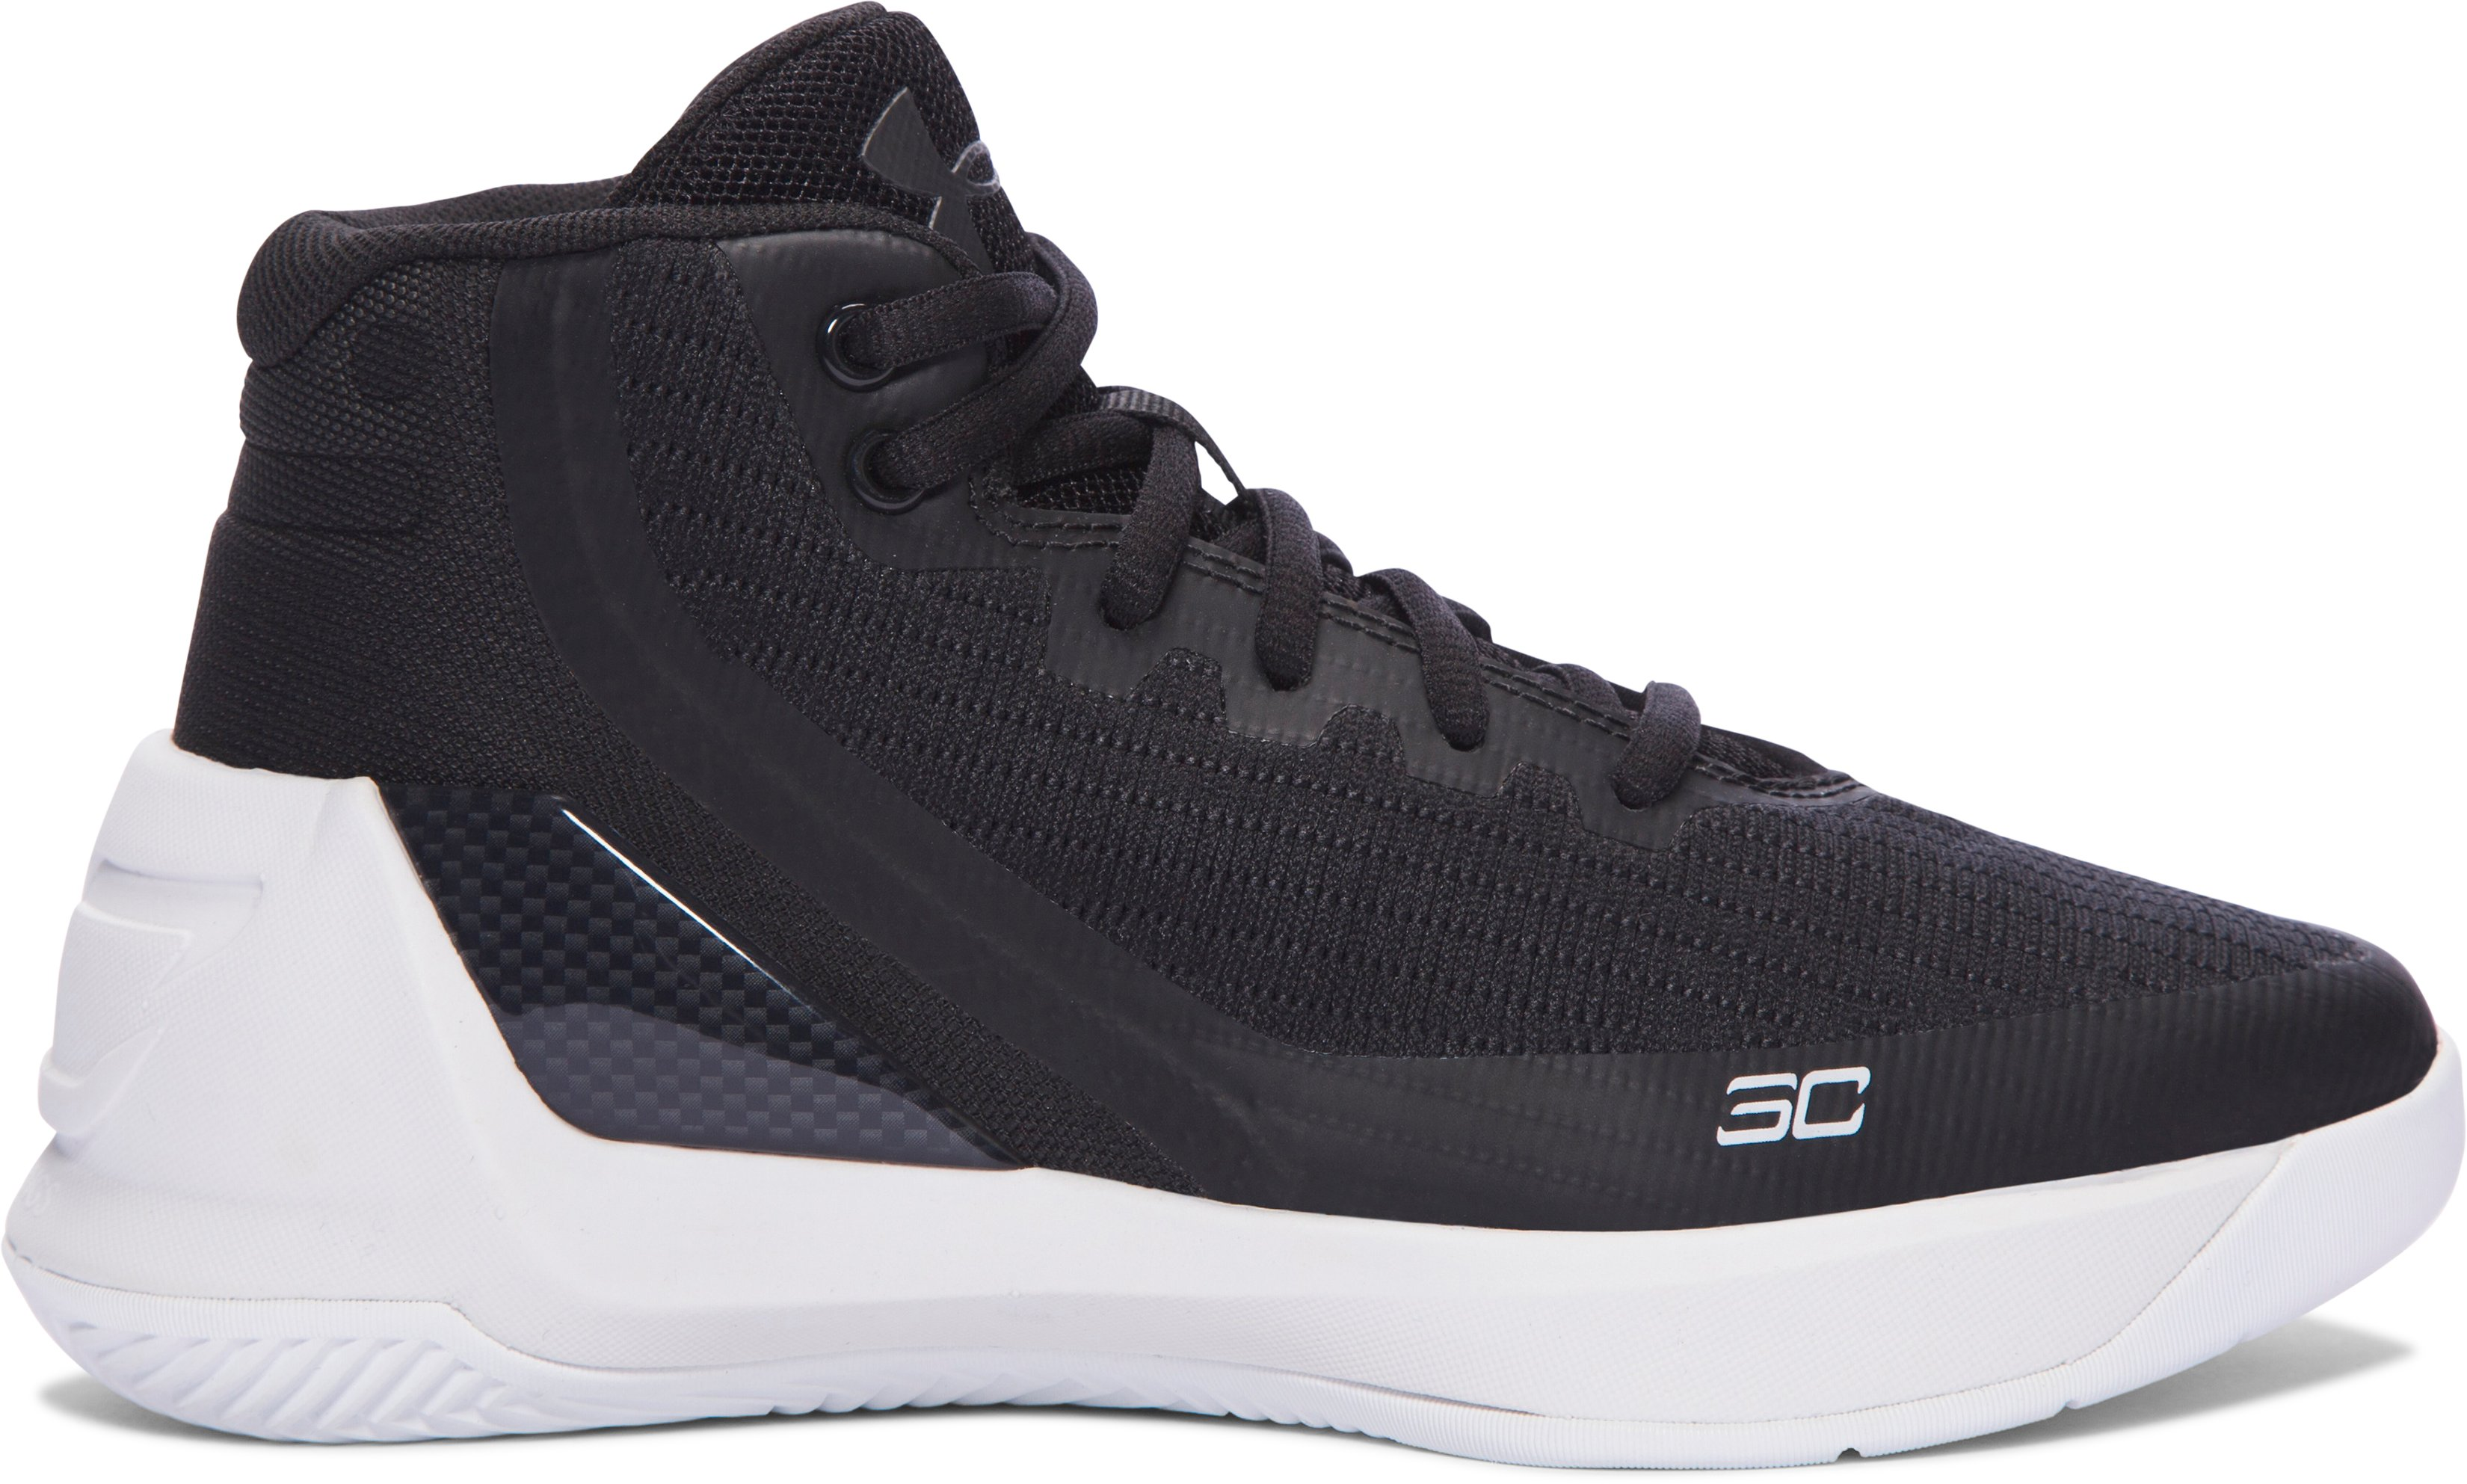 Pre-School UA Curry 3 Basketball Shoes, Black